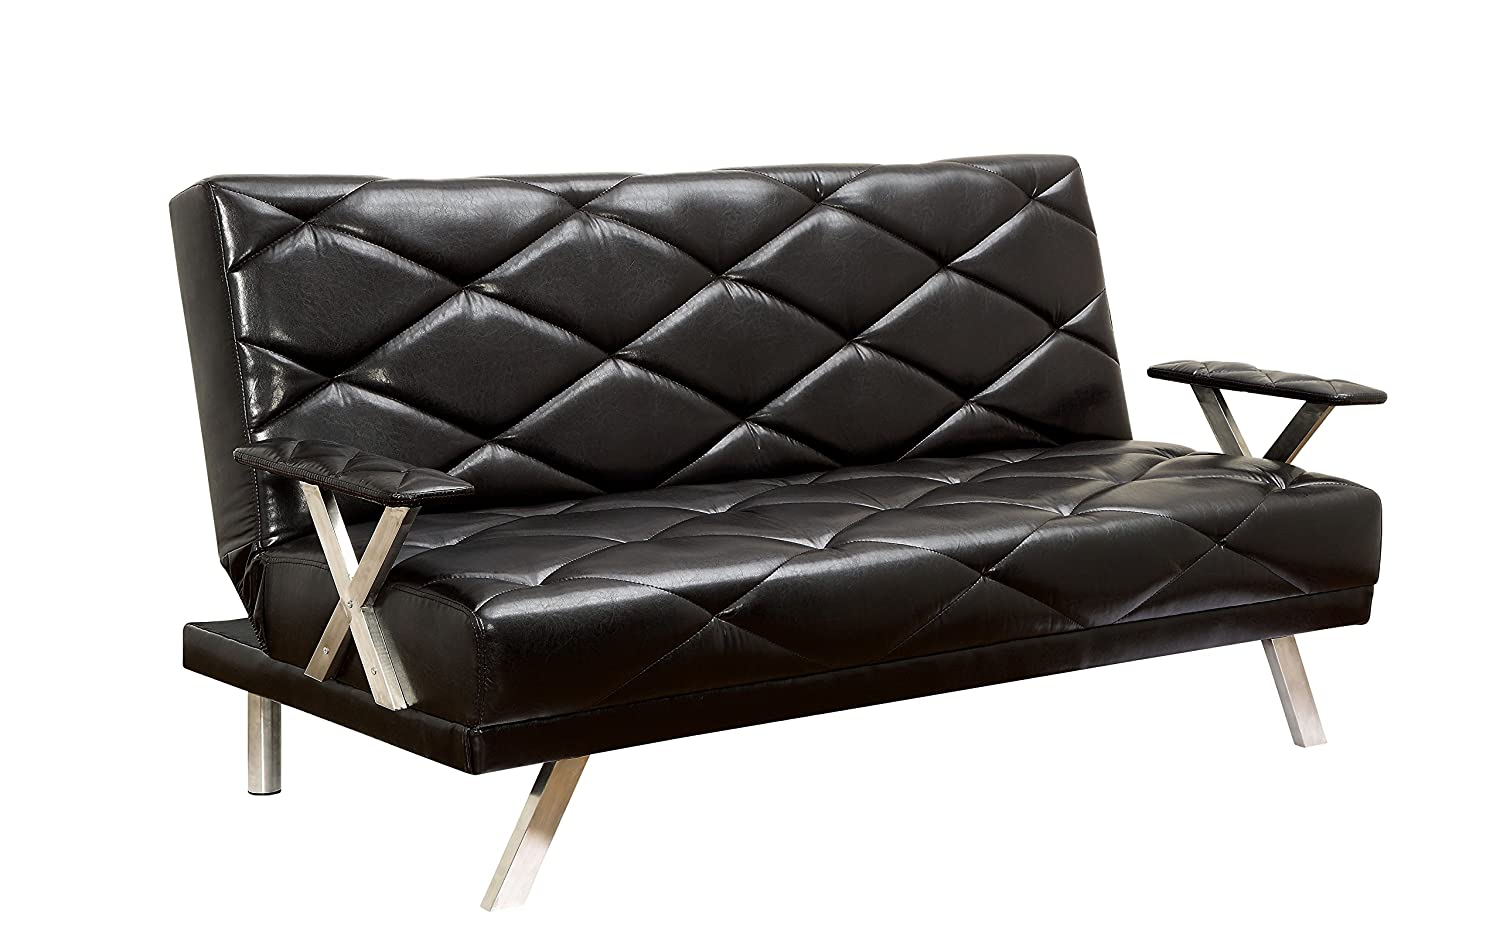 Furniture of America Novelle Futon Sofa - Black